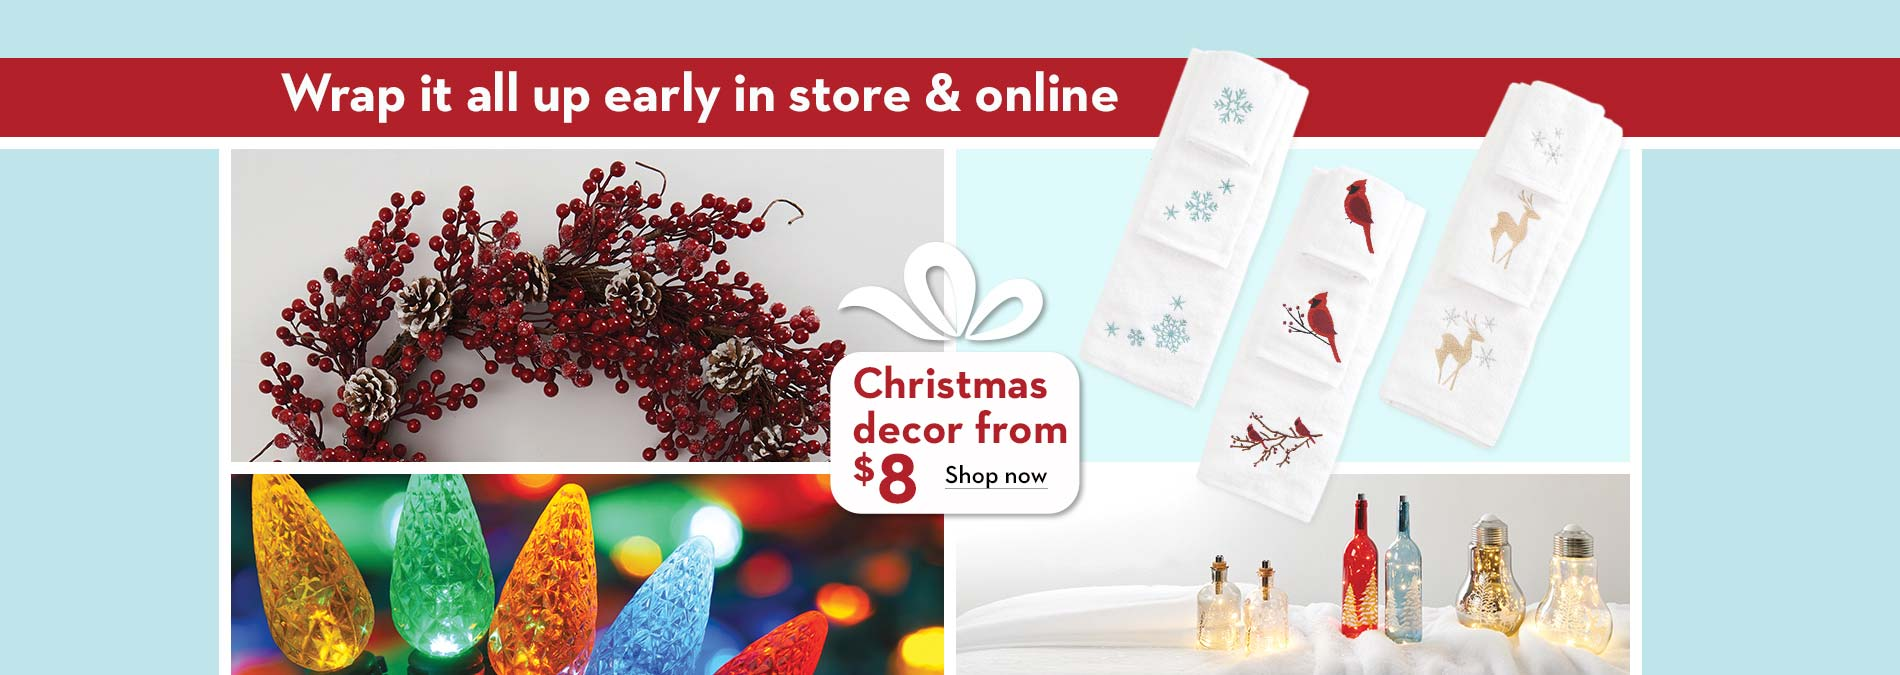 Wrap it all up early. Christmas decor from $8